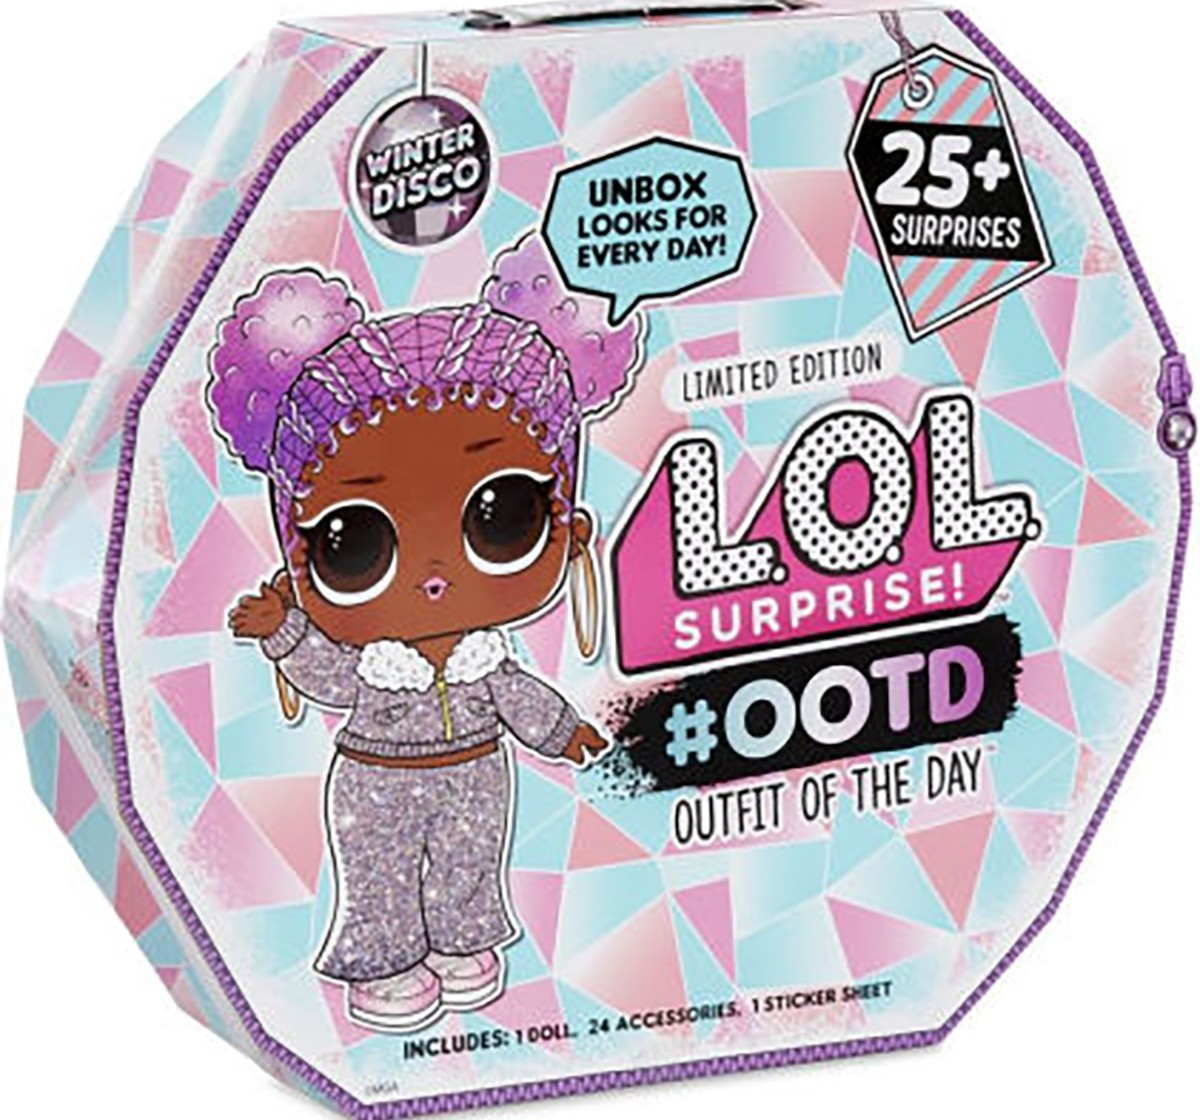 Lol Surprise Ootd (Outfit of The Day) Winter Disco 25+ Surprises, Collectible Dolls for Girls age 3Y+ (Assorted)